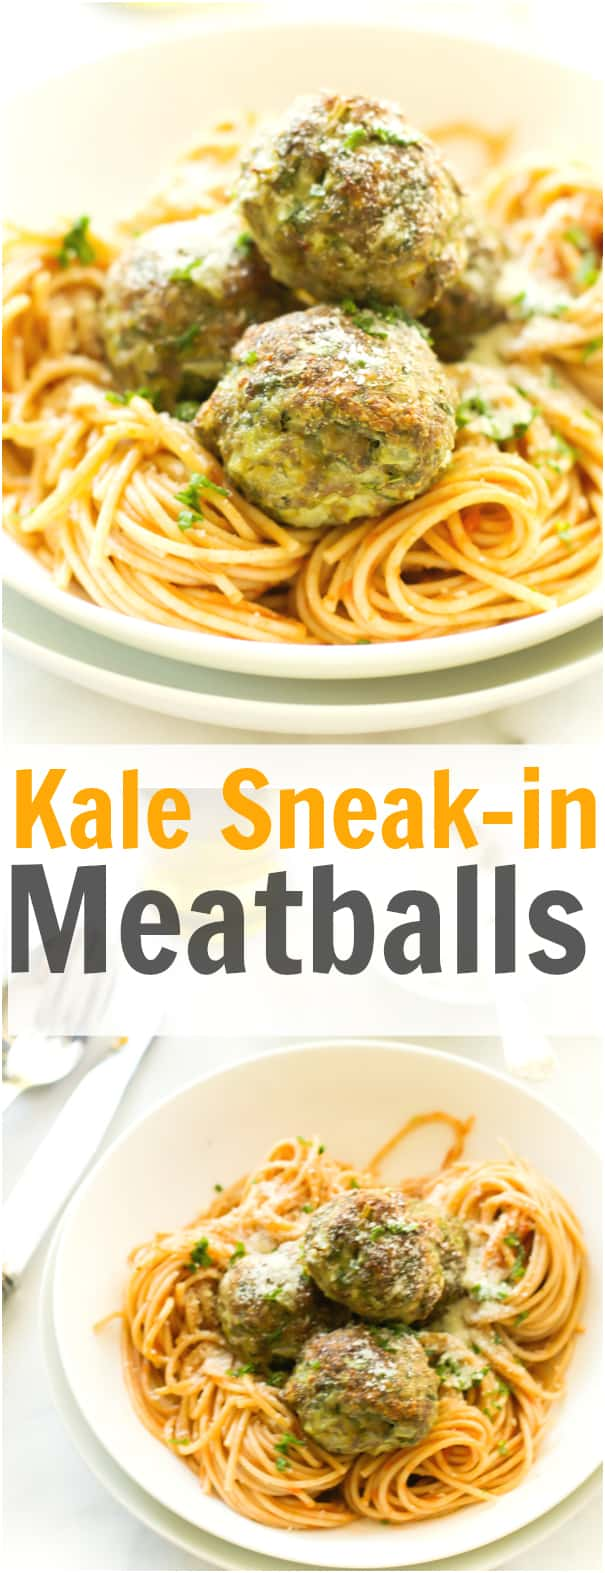 Kale Sneak-in Meatballs